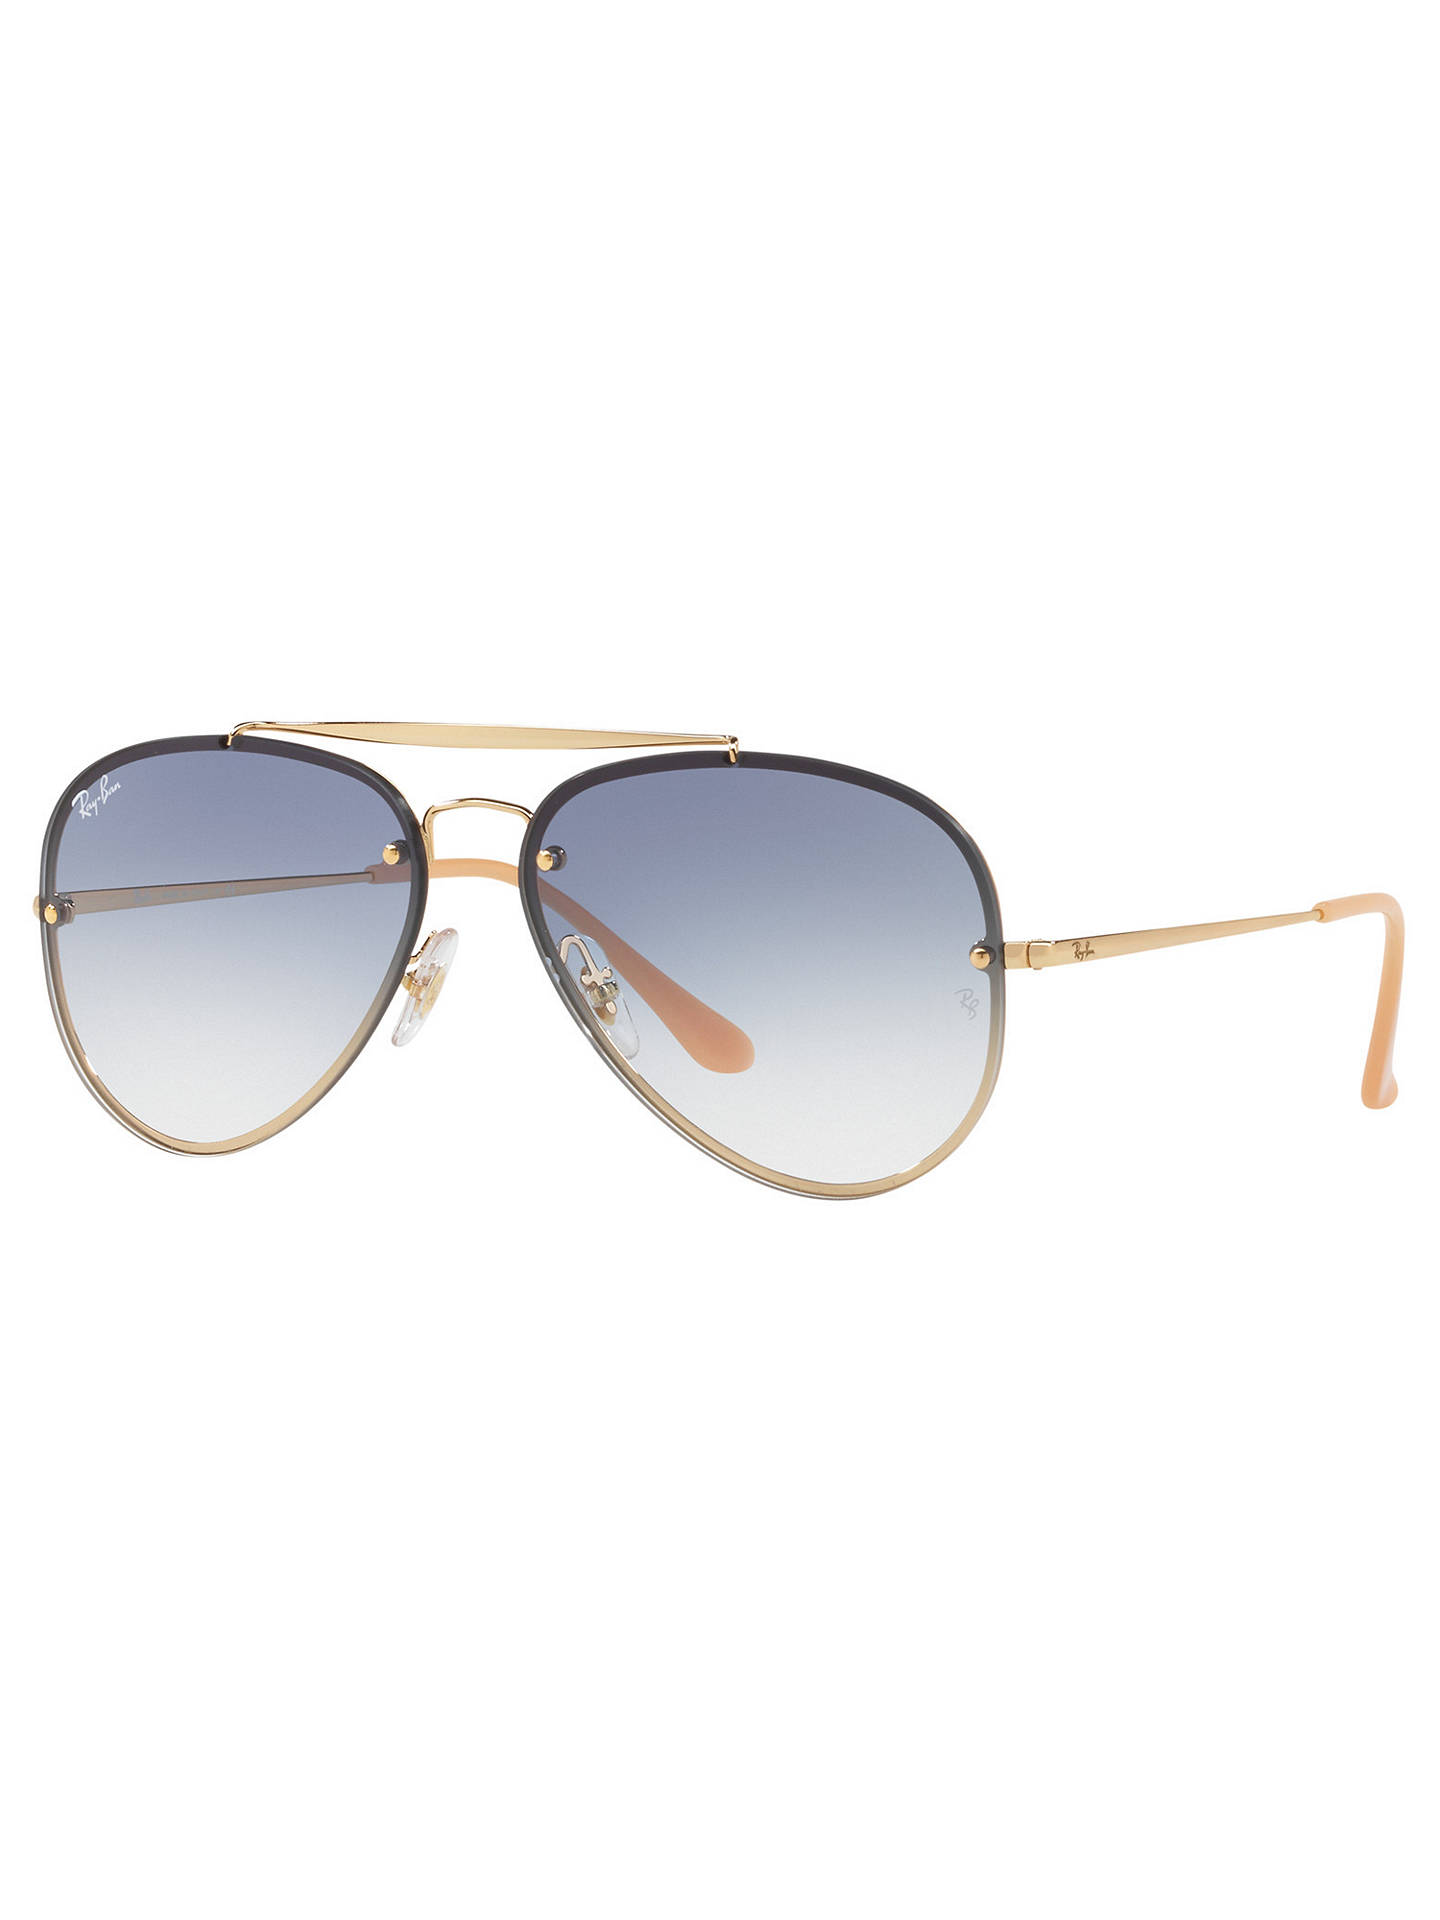 752d1f0ed Buy Ray-Ban RB3584N Blaze Aviator Sunglasses, Gold/Blue Gradient Online at  johnlewis ...